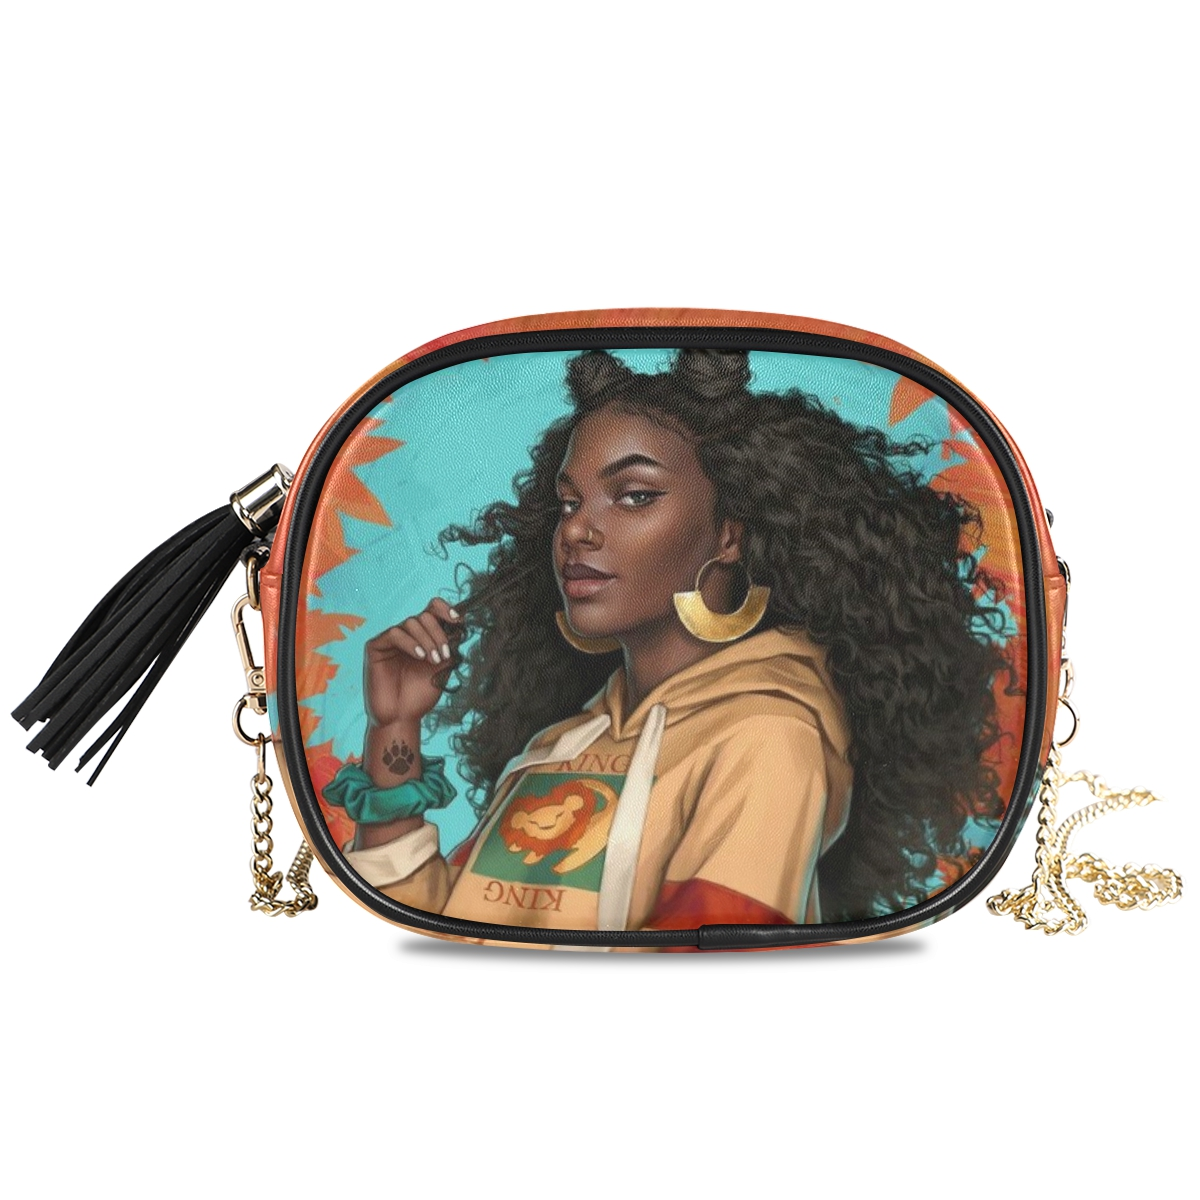 product-New Shoulder crossbody bag women bags 2020 PU Leather Chain bags Afro Girls black Women Mess-1